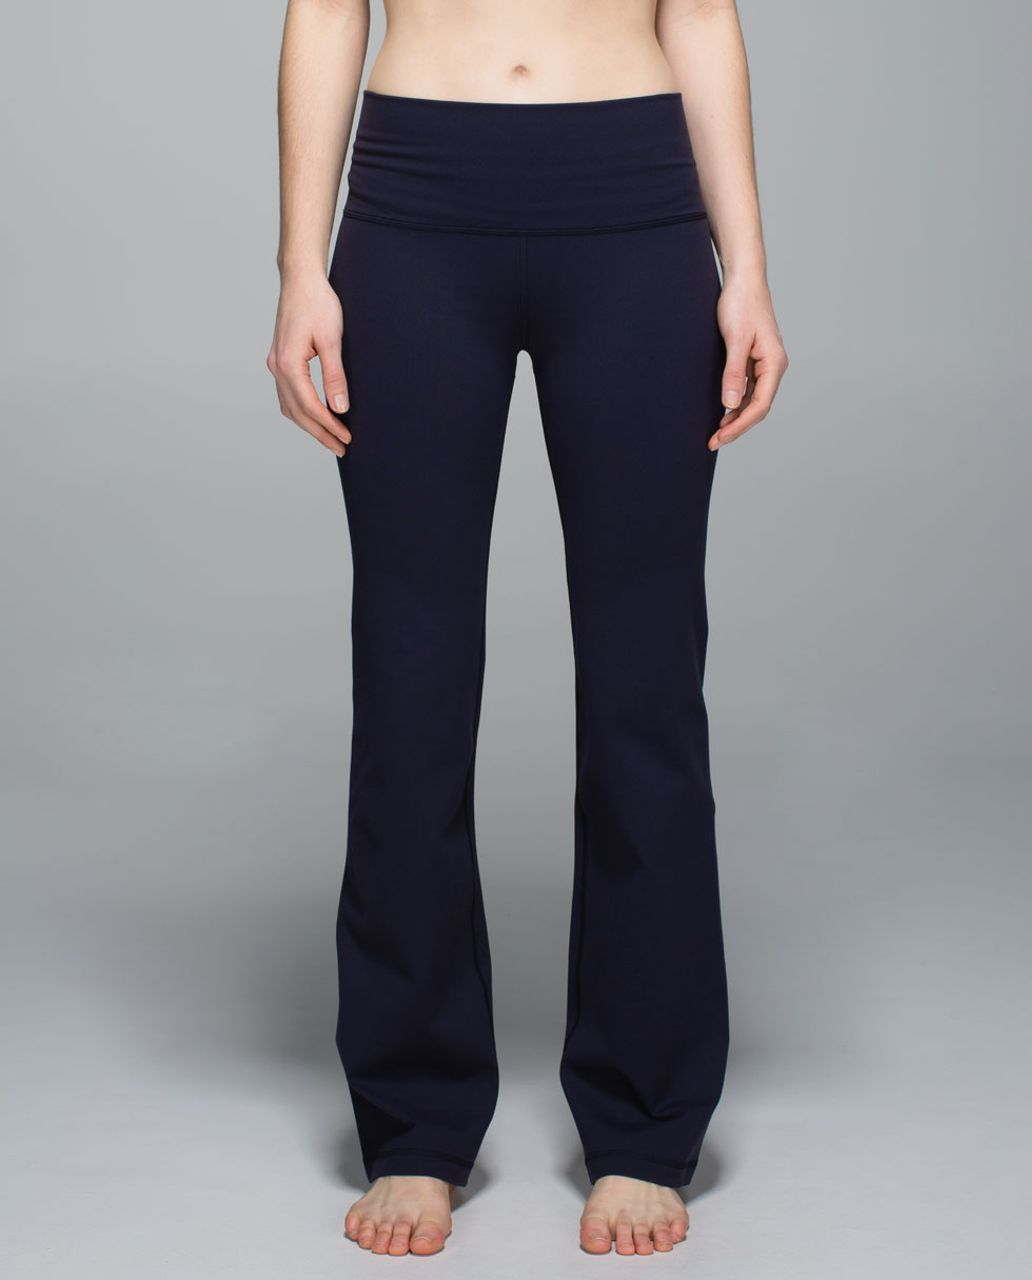 Lululemon Groove Pant II (Roll Down - Regular) - Naval Blue